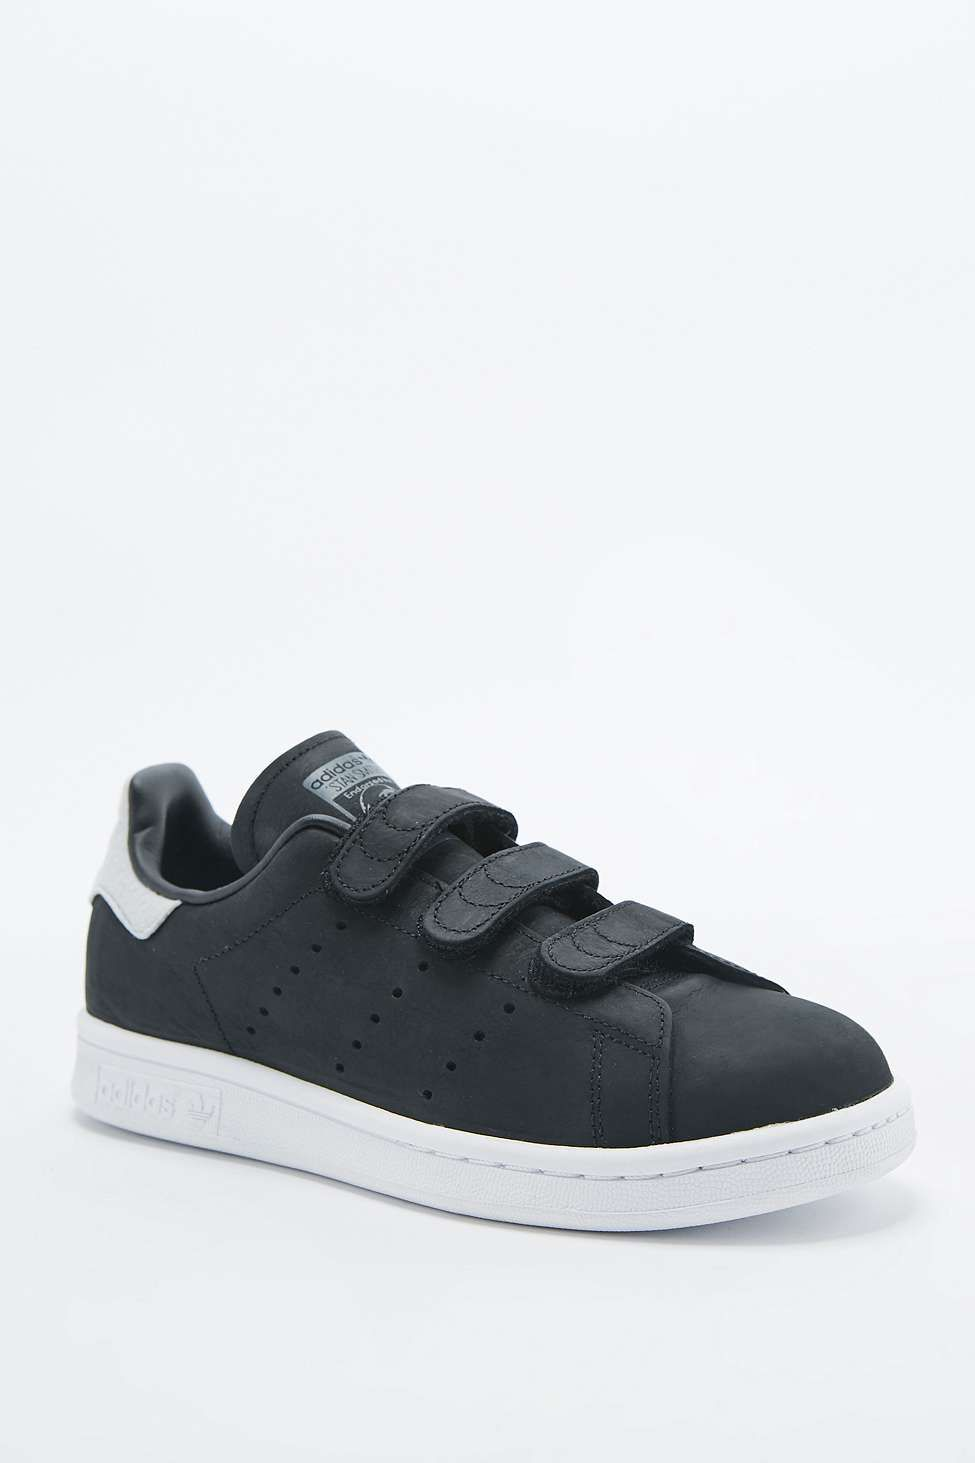 quality design 27952 d5c5a adidas Originals Stan Smith Black Velcro Trainers